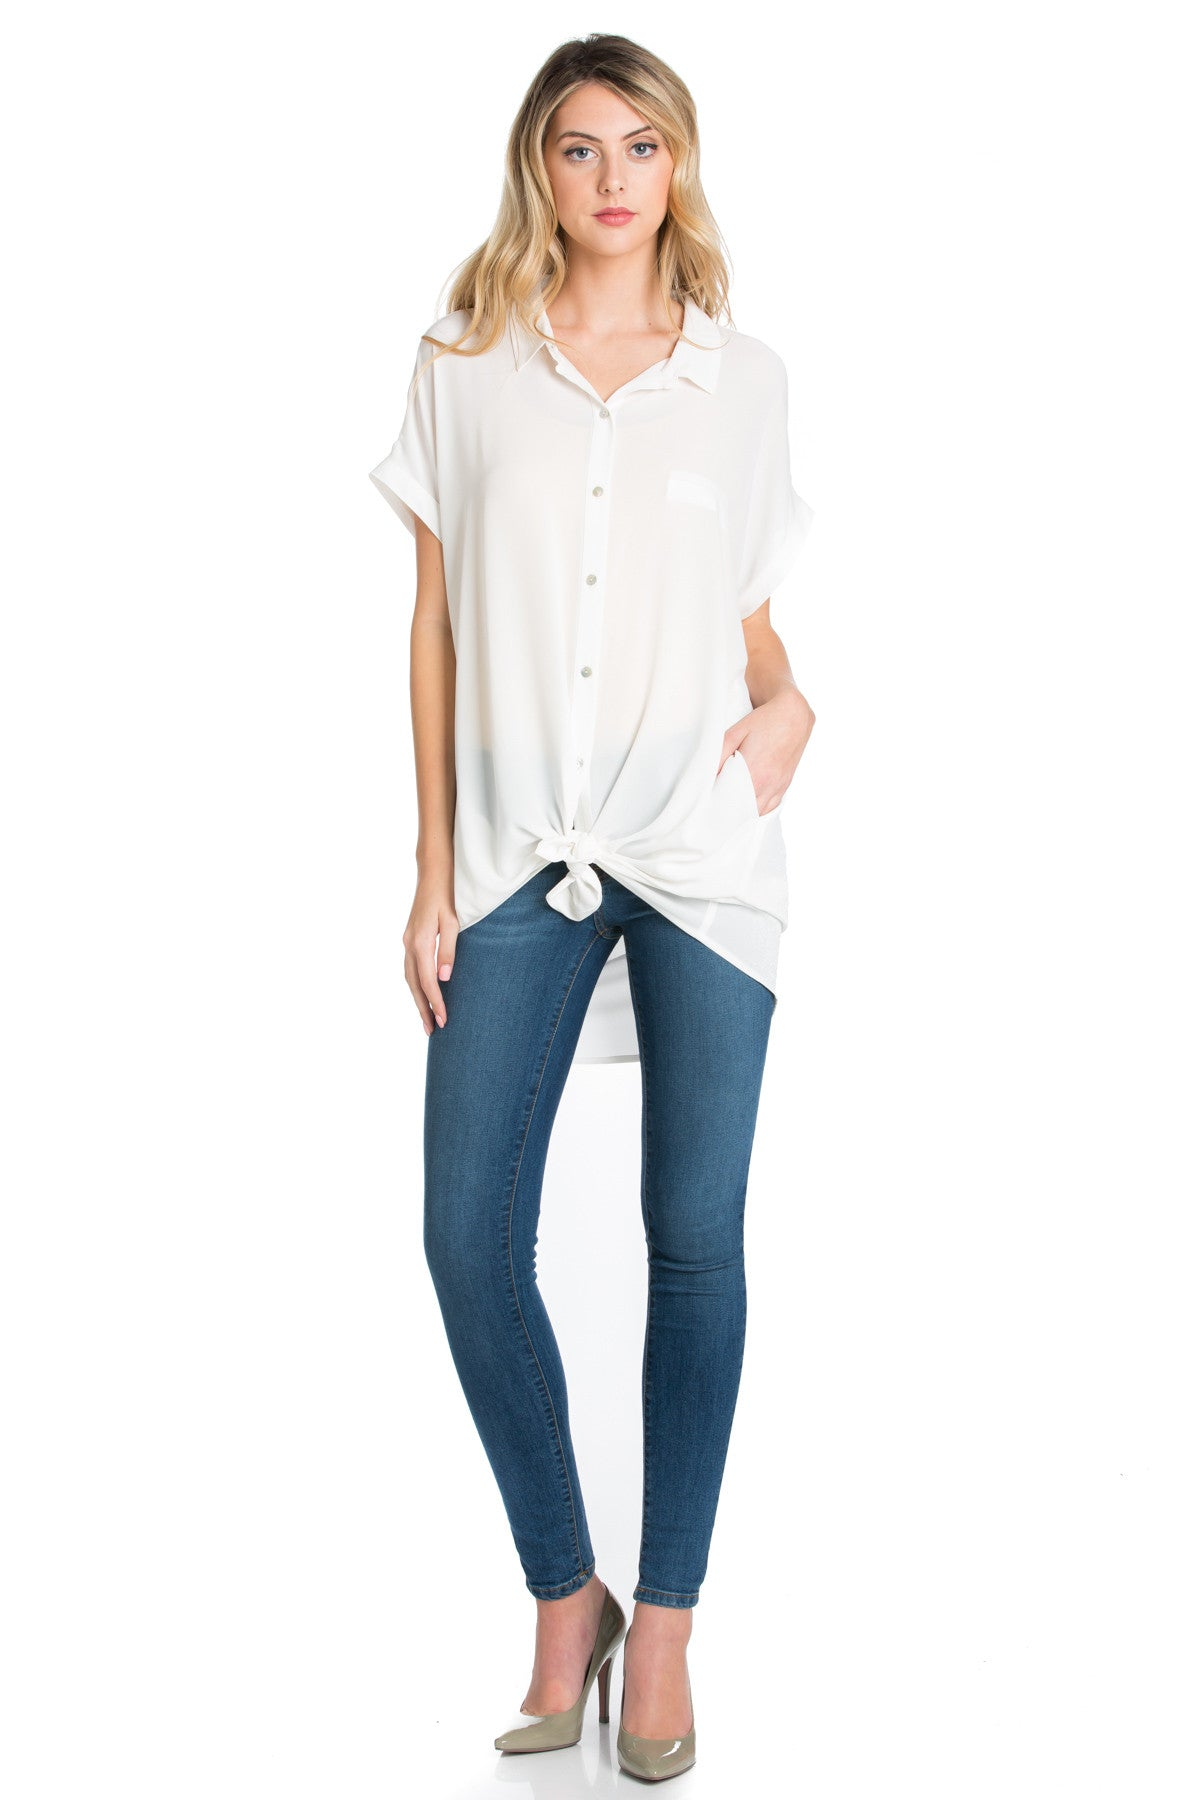 Short Sleeve Longline Button Down Chiffon Top in White - Tops - My Yuccie - 15